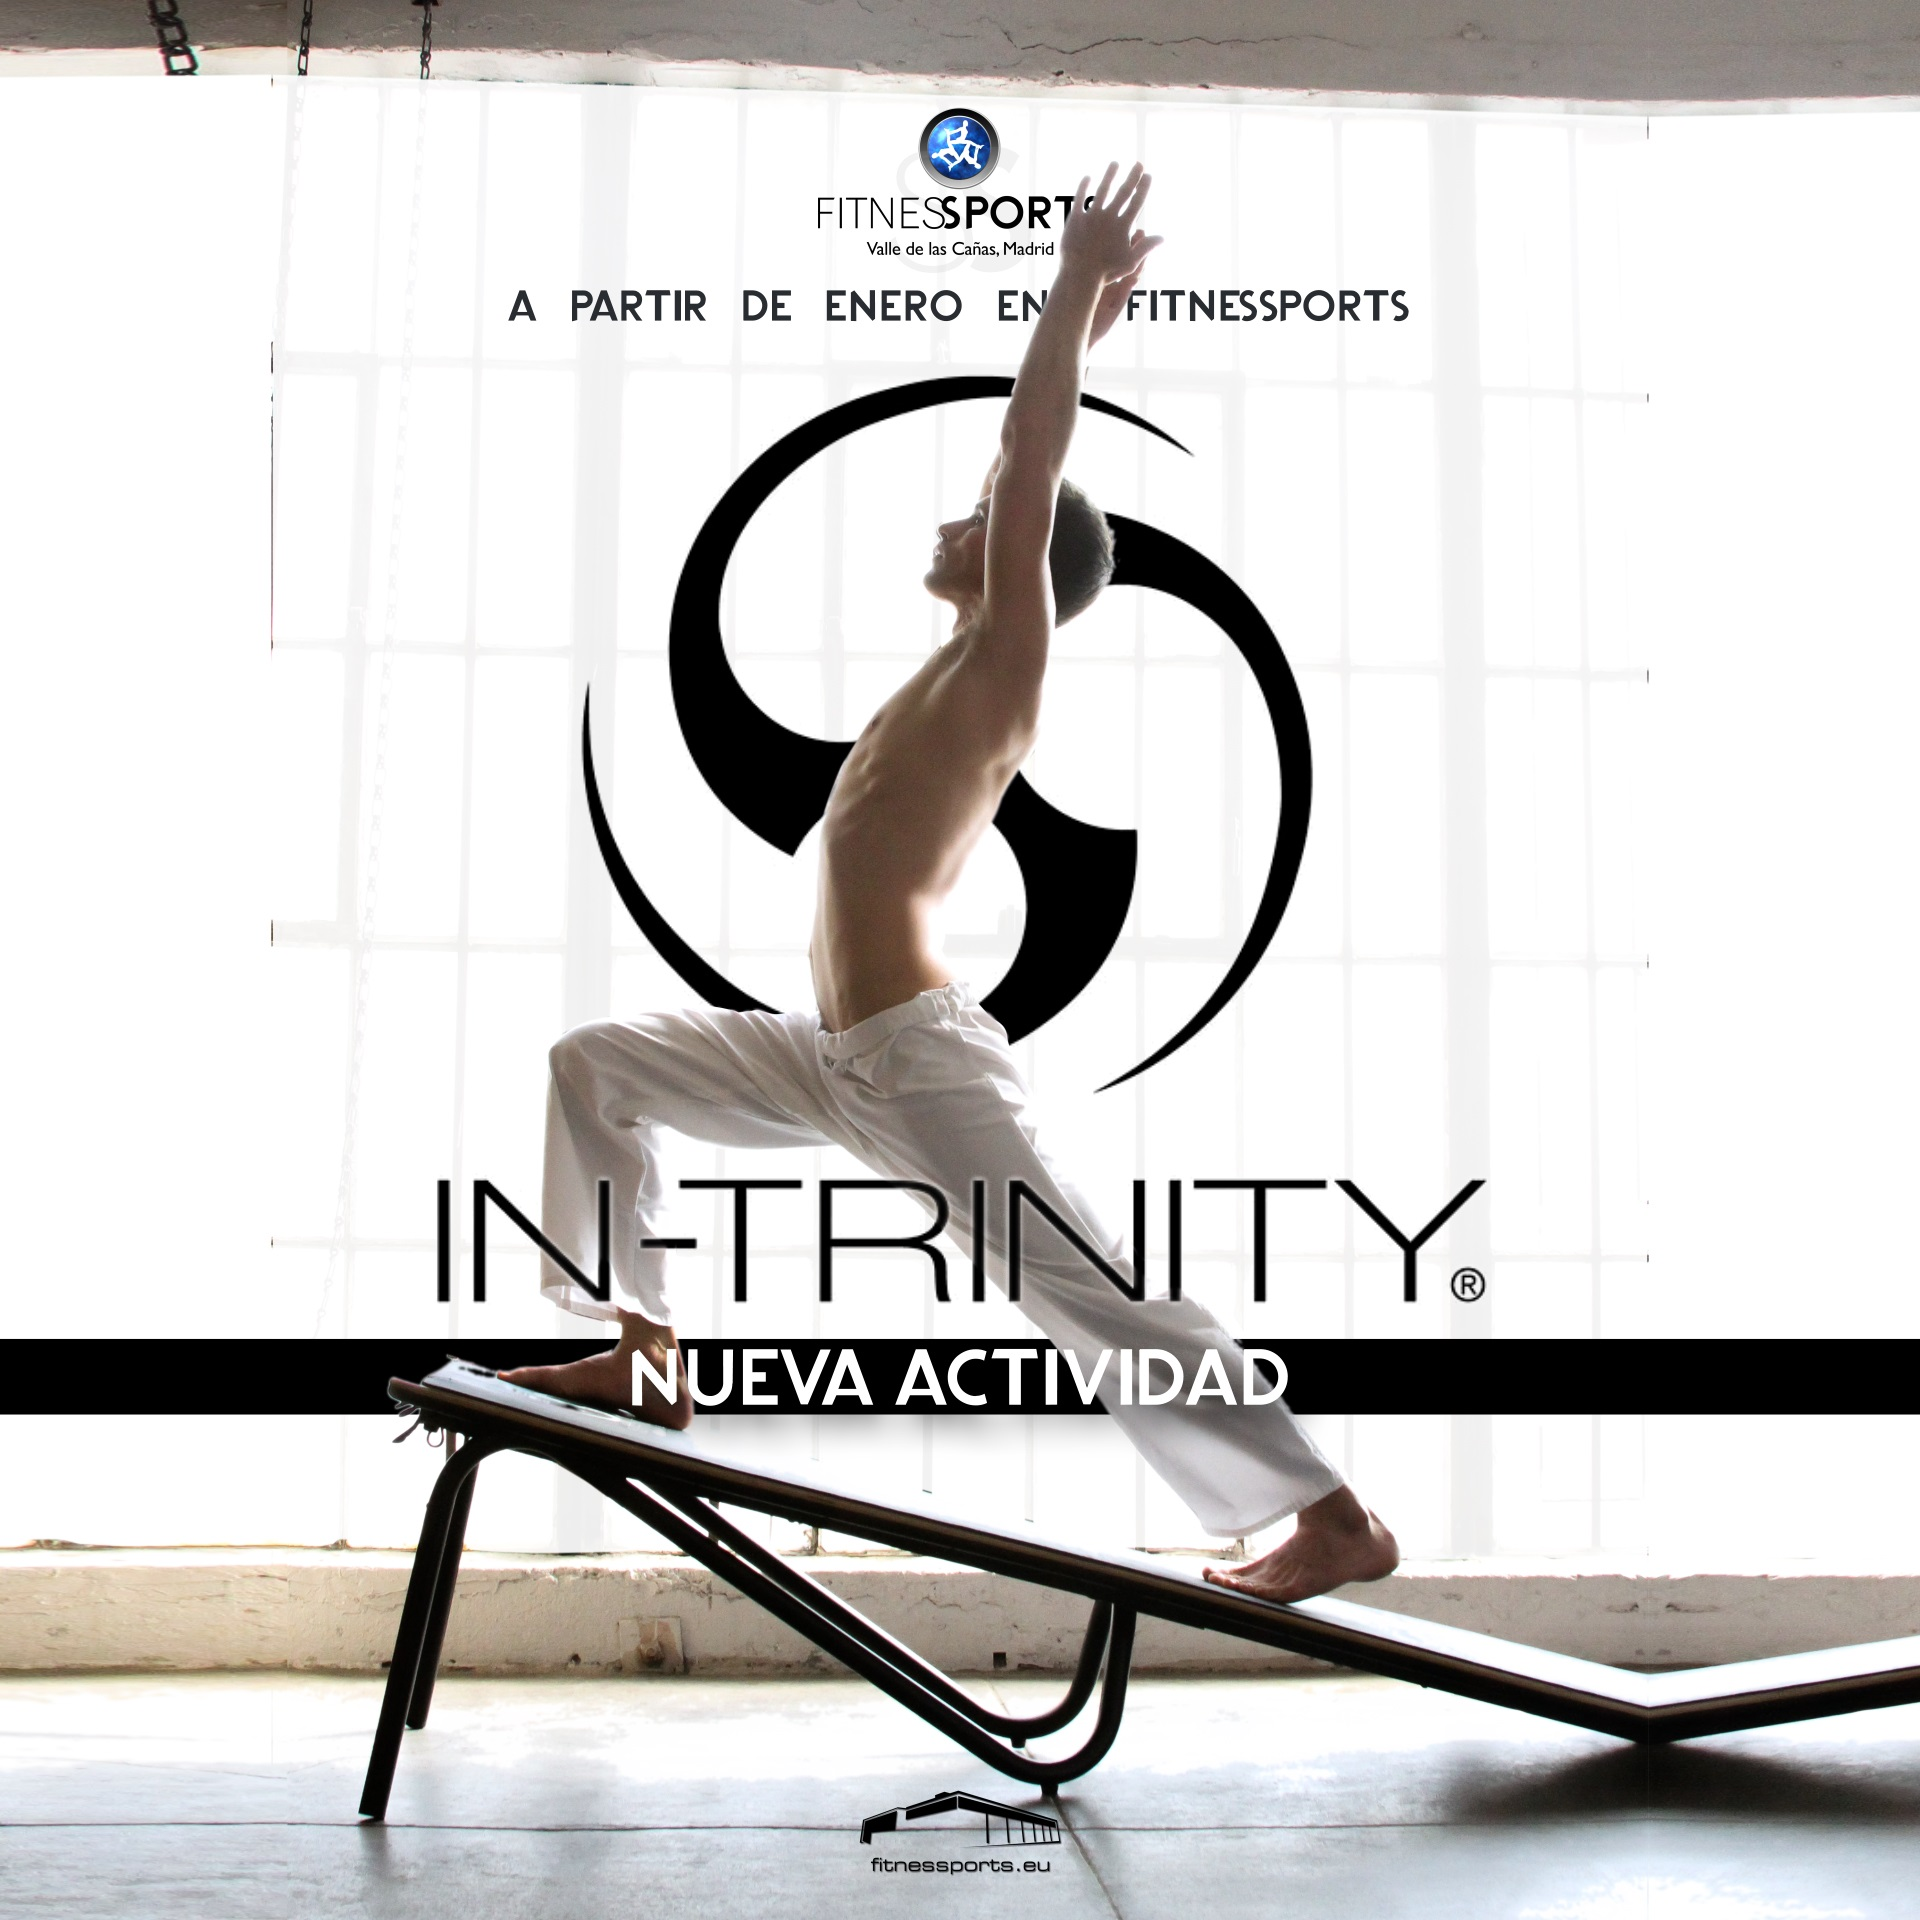 intrinity-matrix-fitness-sports-valle-canas-nueva-actividad-box